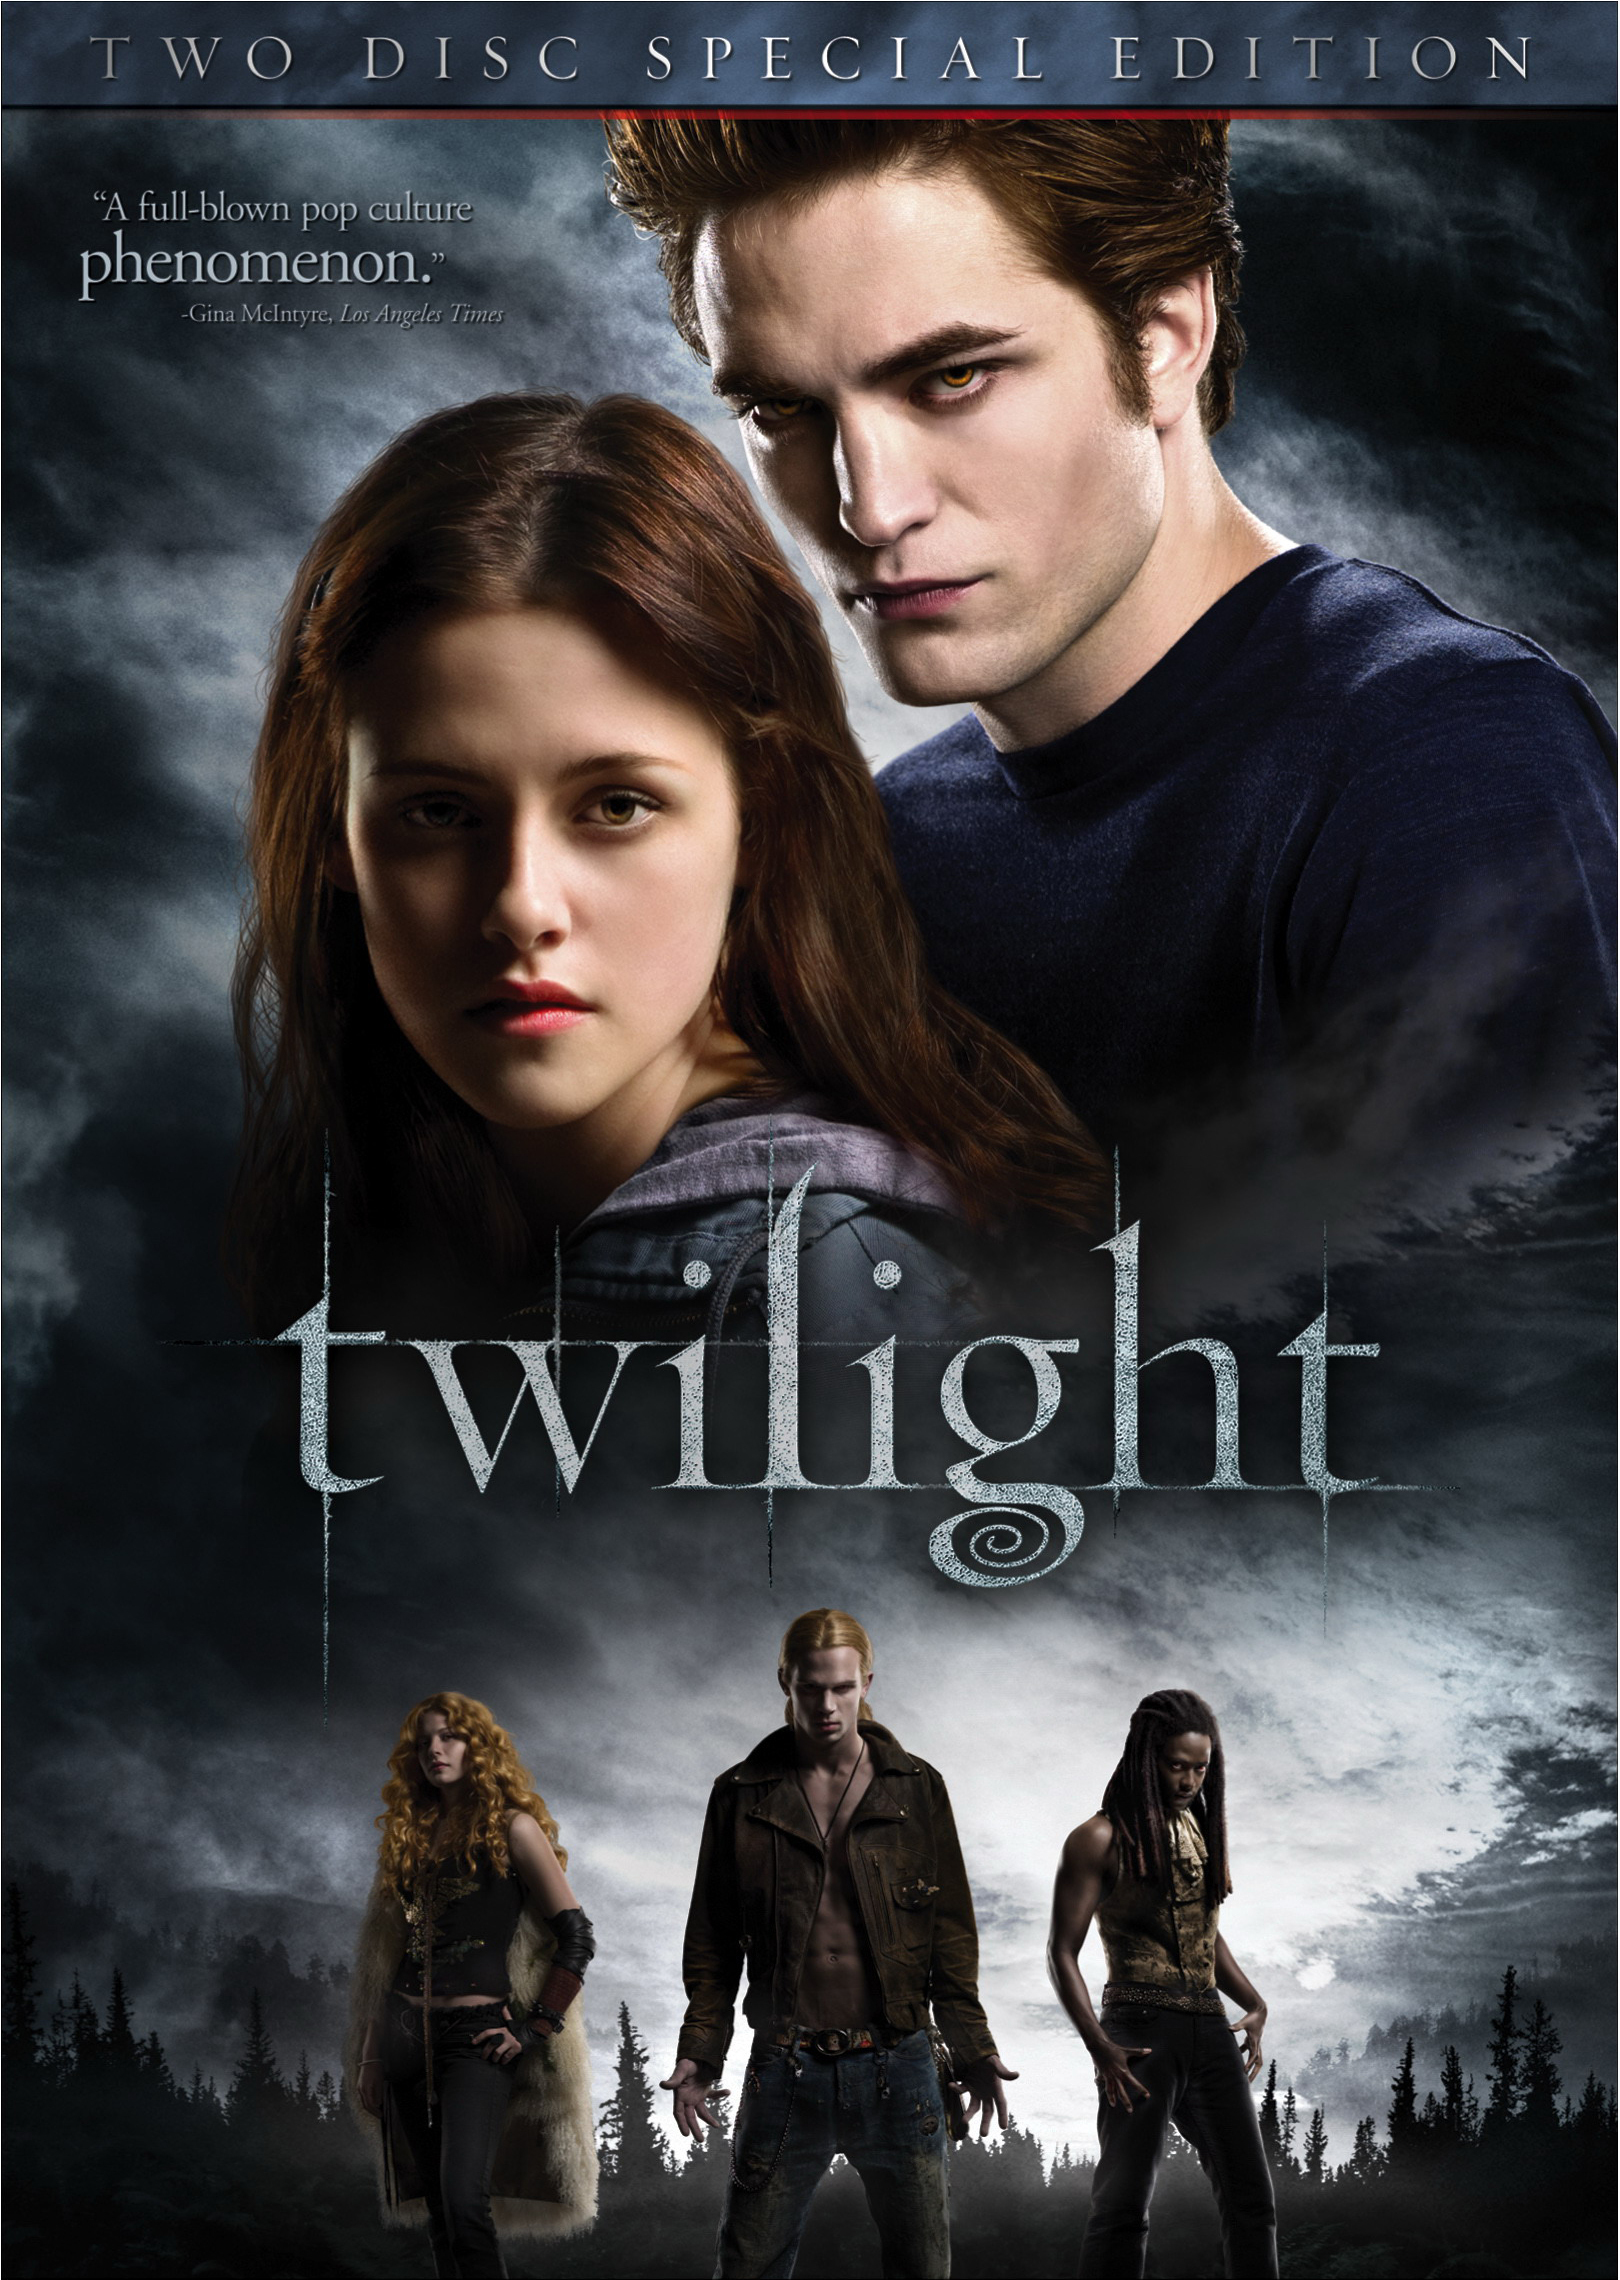 Twilight DVD Cover Poster [2D]